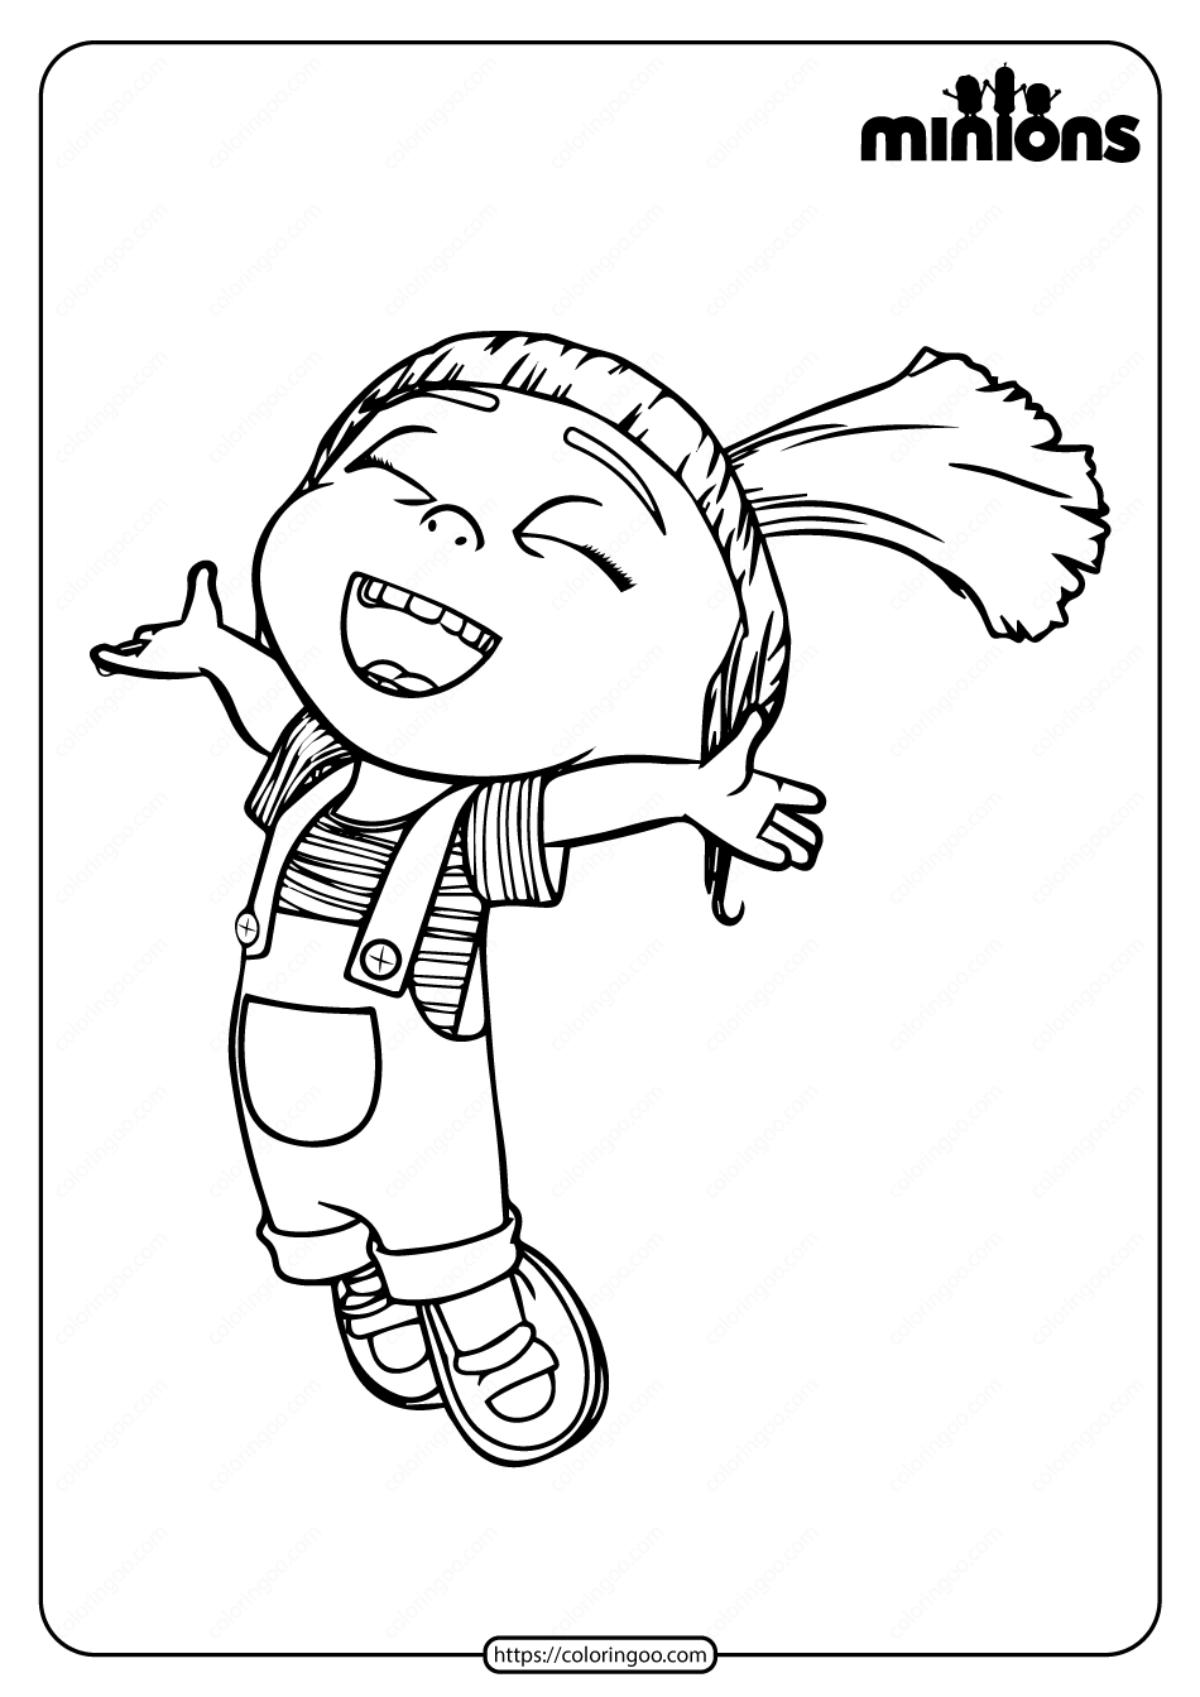 Agnes with Unicorn coloring page | Free Printable Coloring Pages | 1697x1200